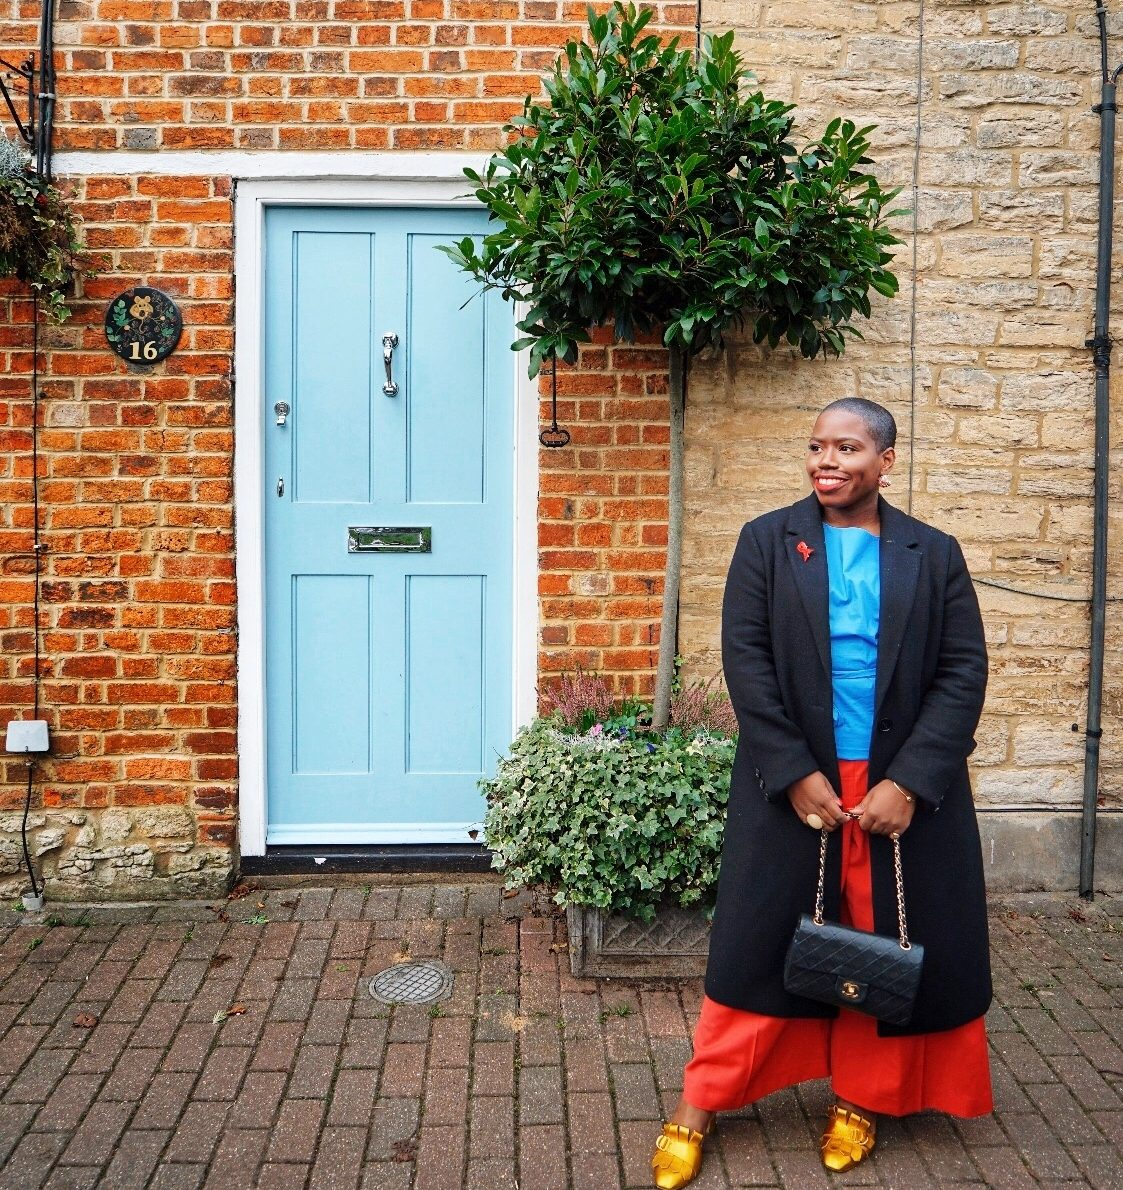 Black woman standing in front a pale blue door